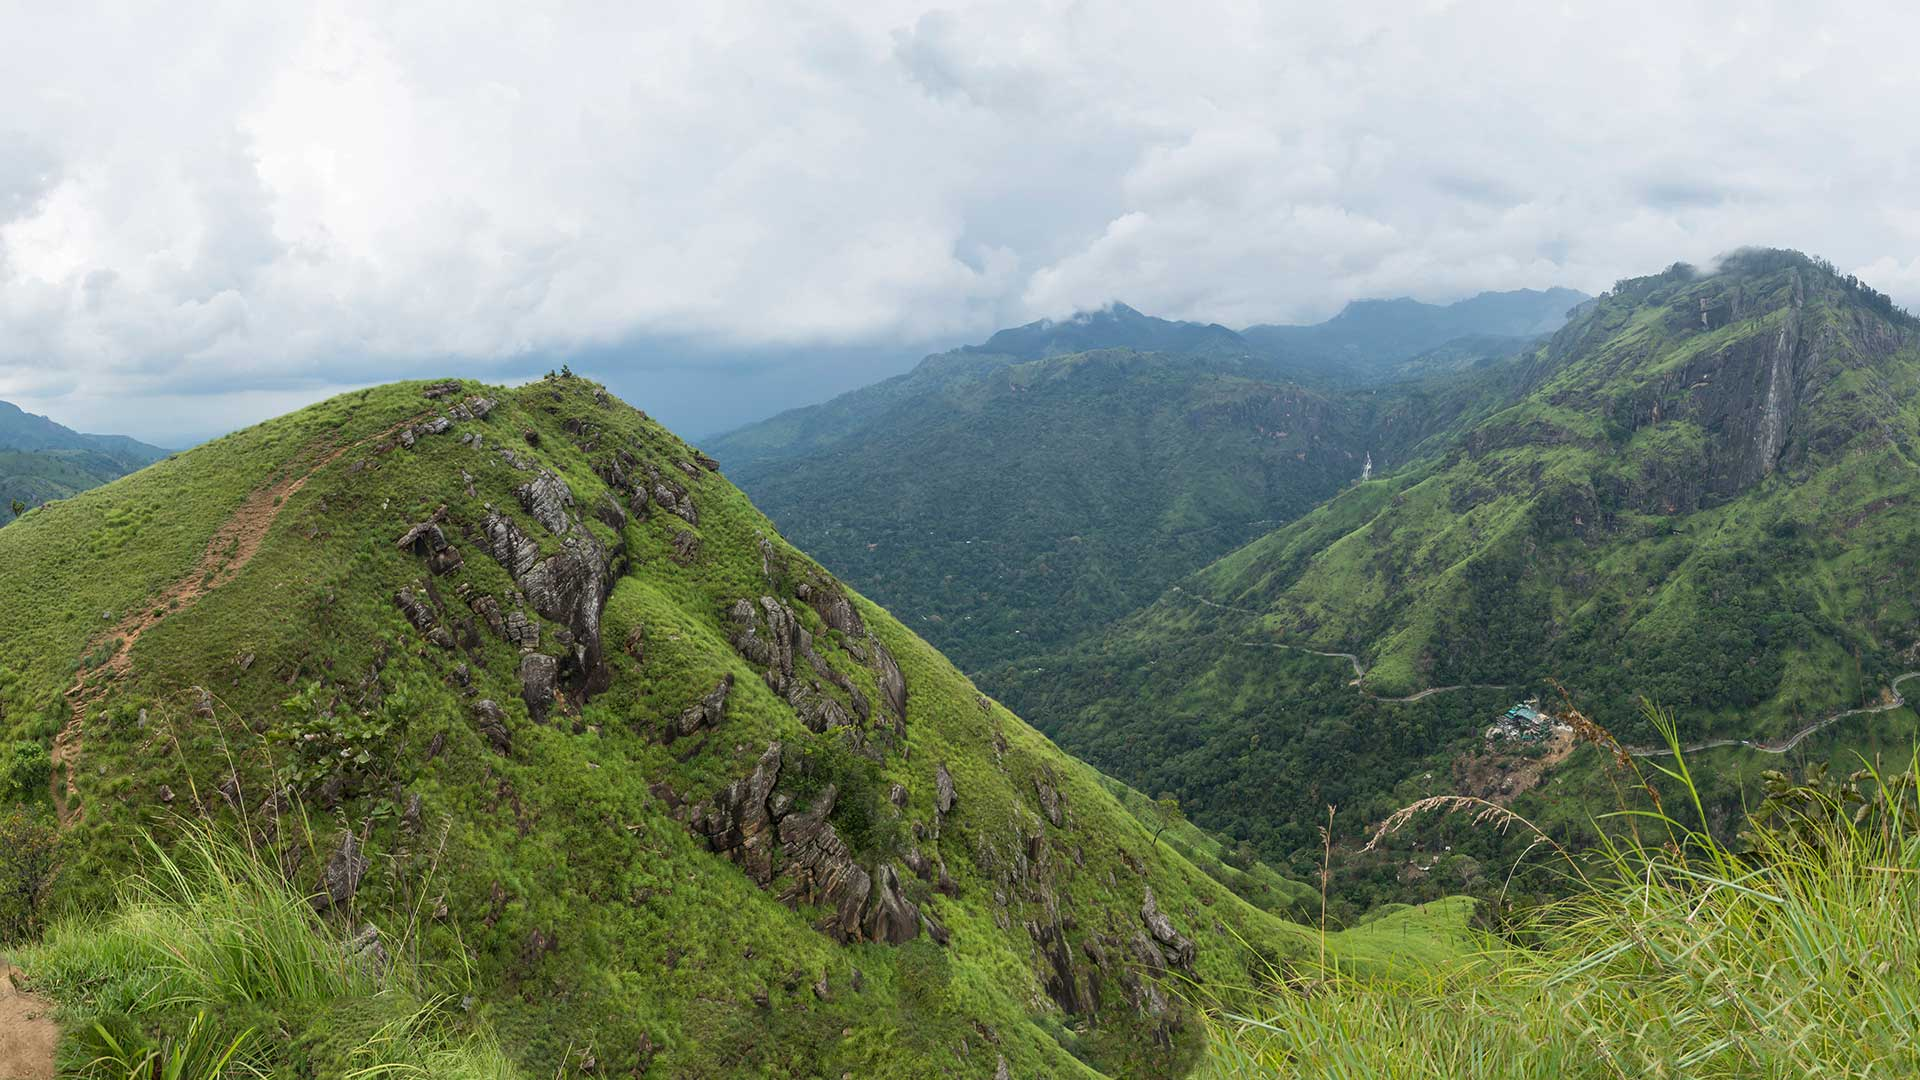 Panaroma-mountain-view-from-Little-Adams-Peak,-Ella,-Sri-Lanka